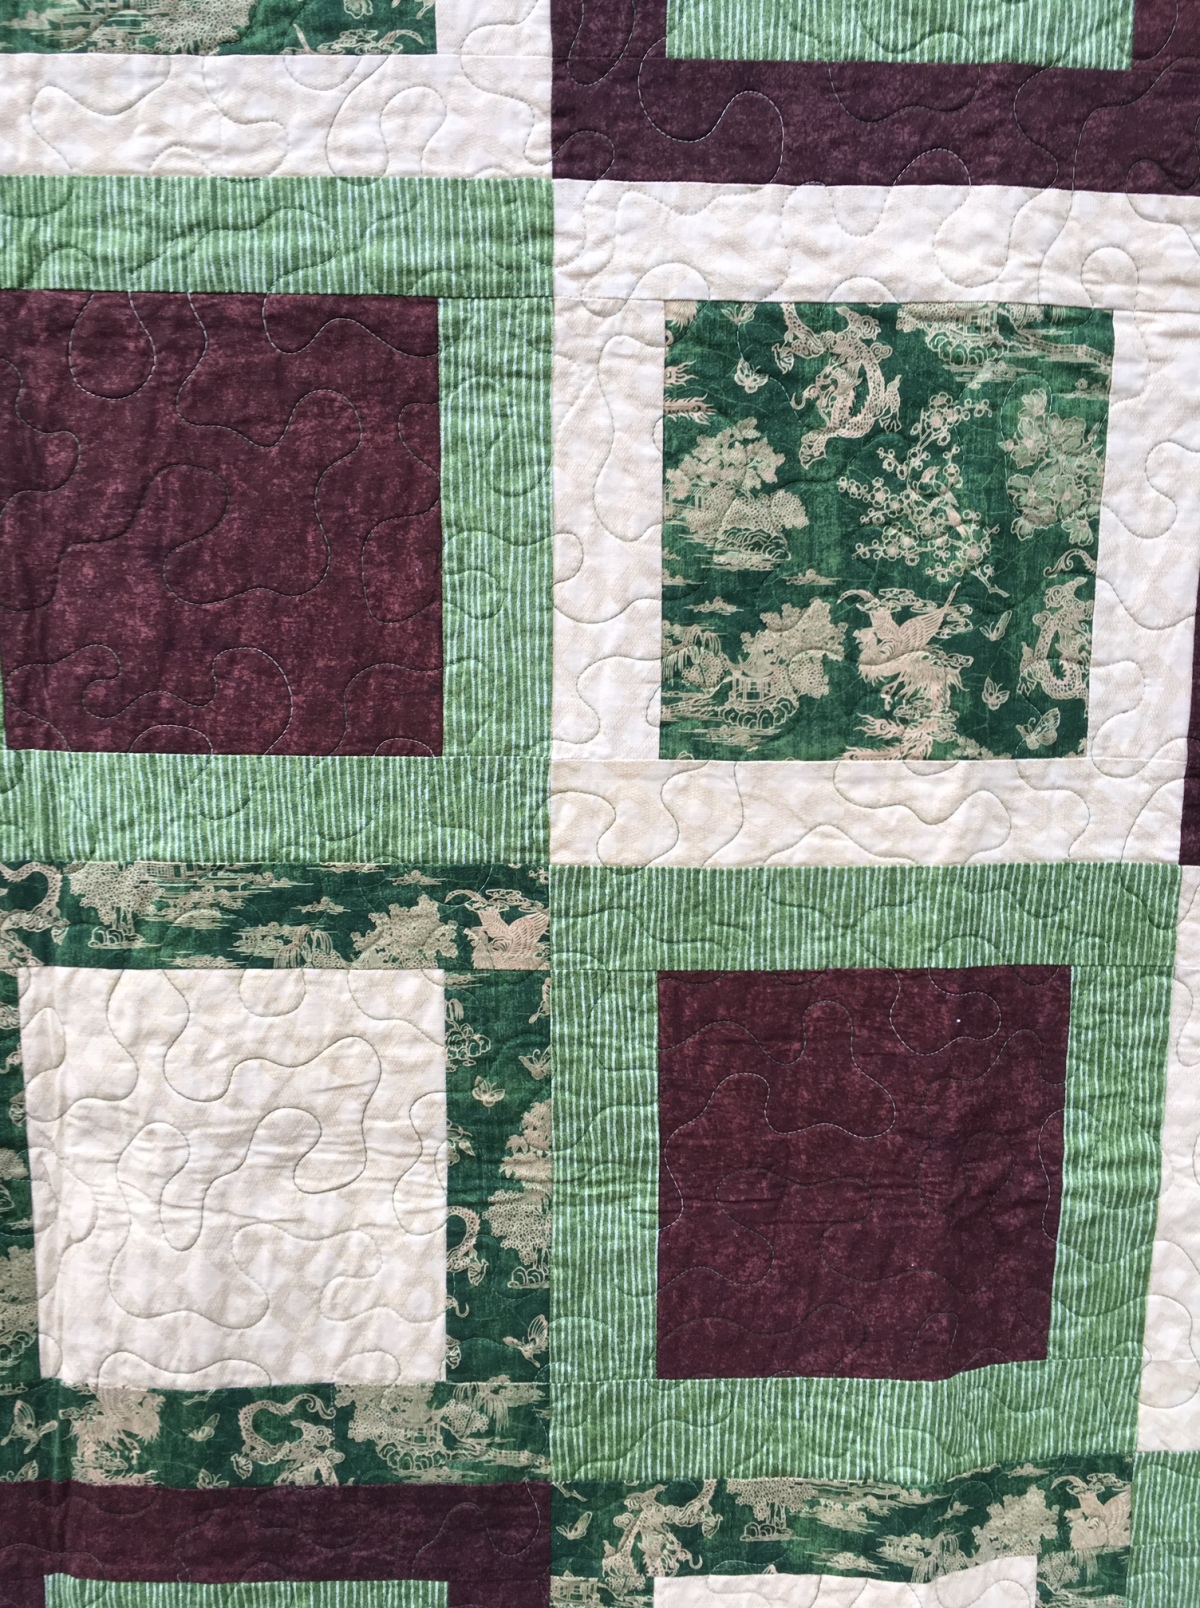 Online Market Quilt Showcase 7 – Unicorn and Dragon quilts